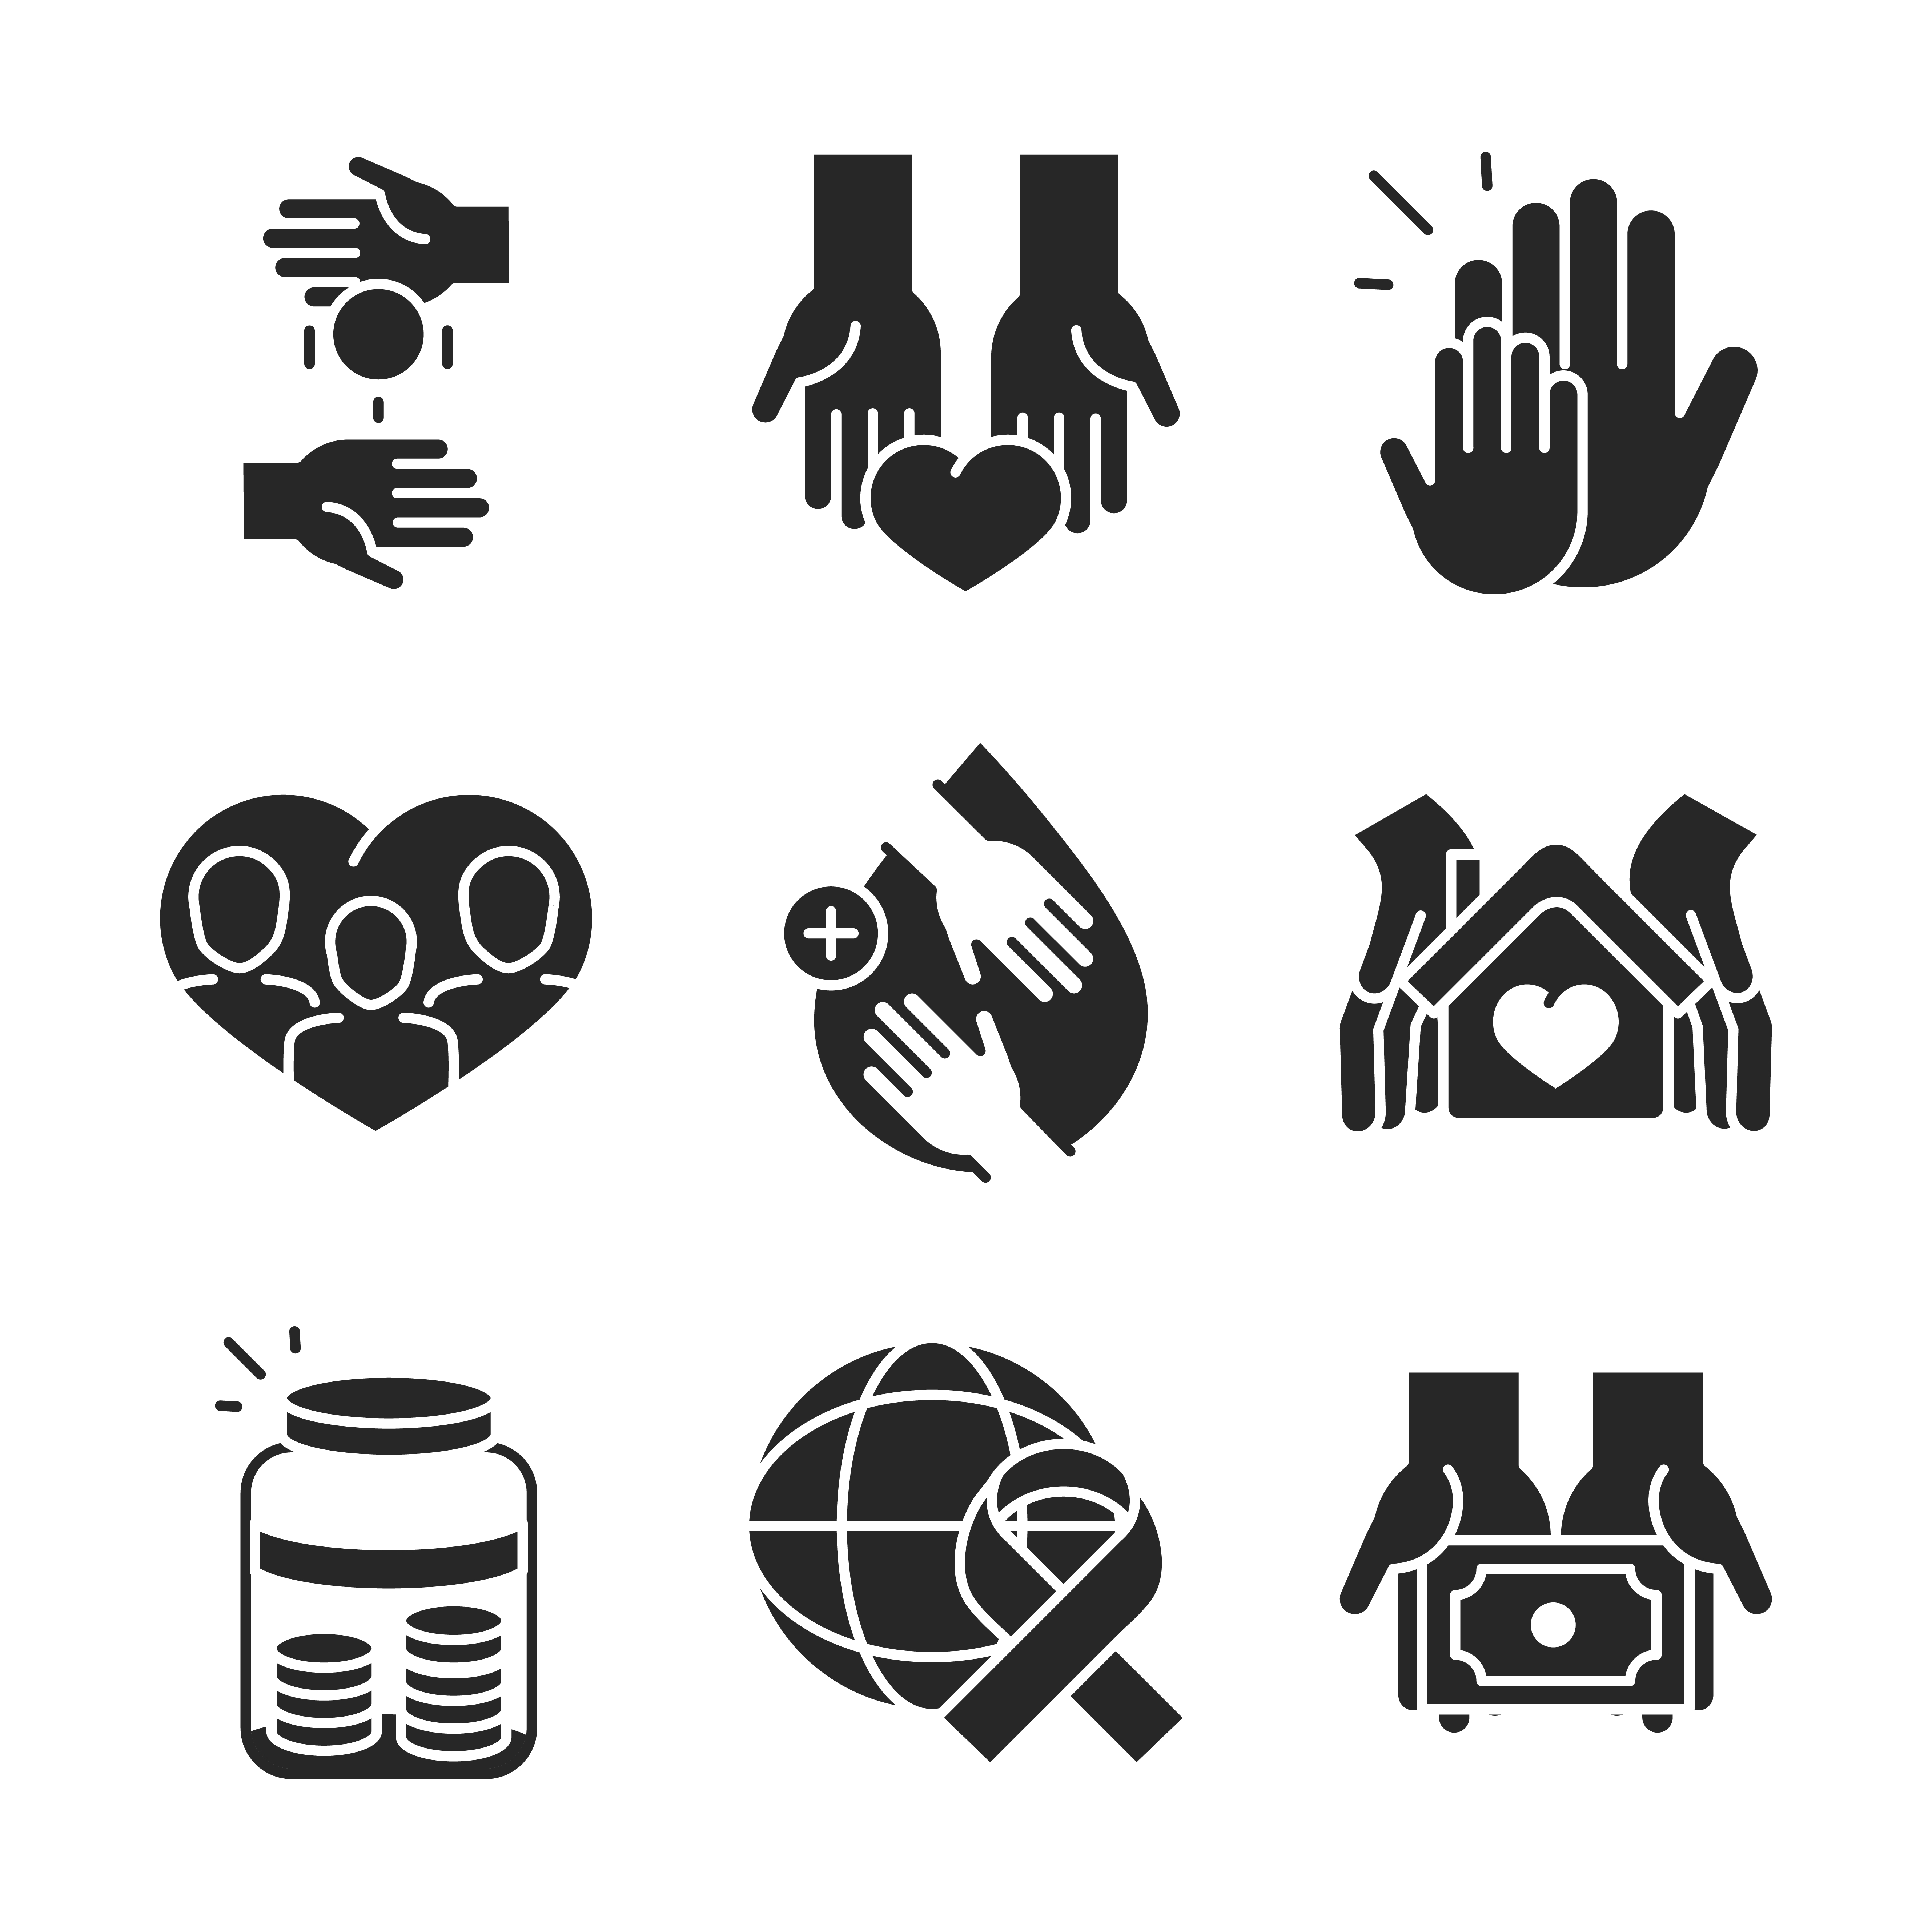 Donation and social assistance icon set